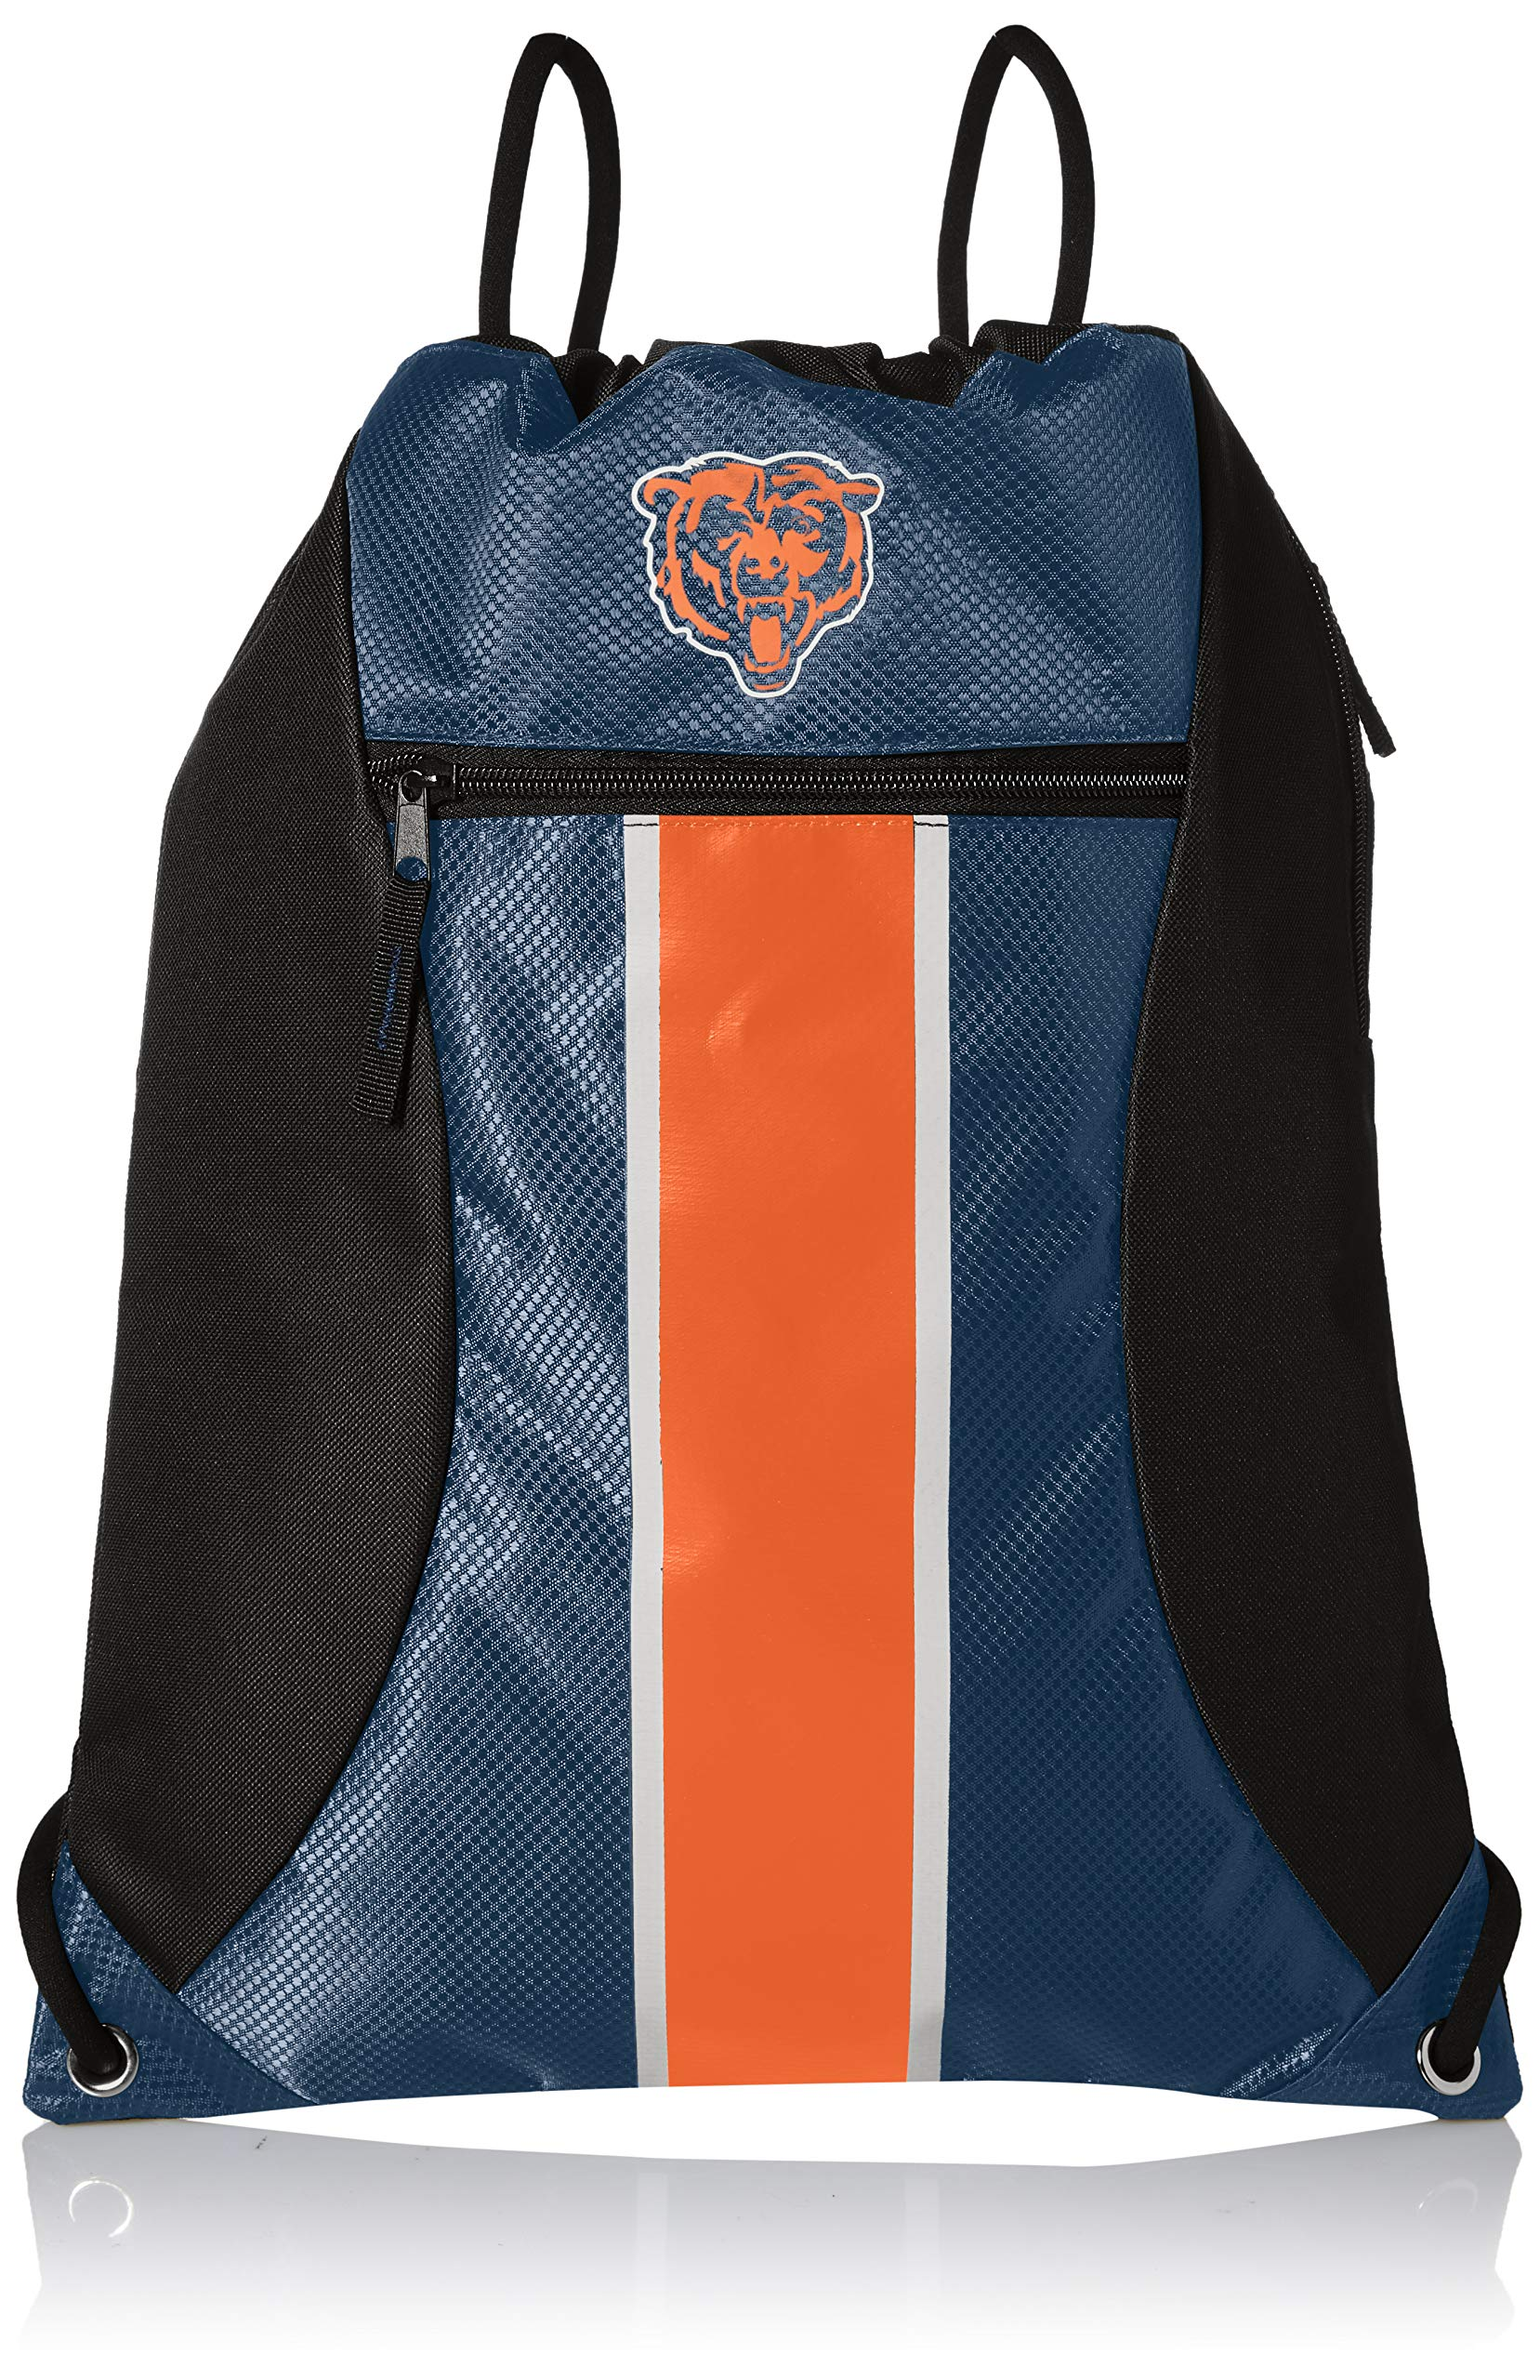 Chicago Bears Big Stripe Zipper Drawstring Backpack